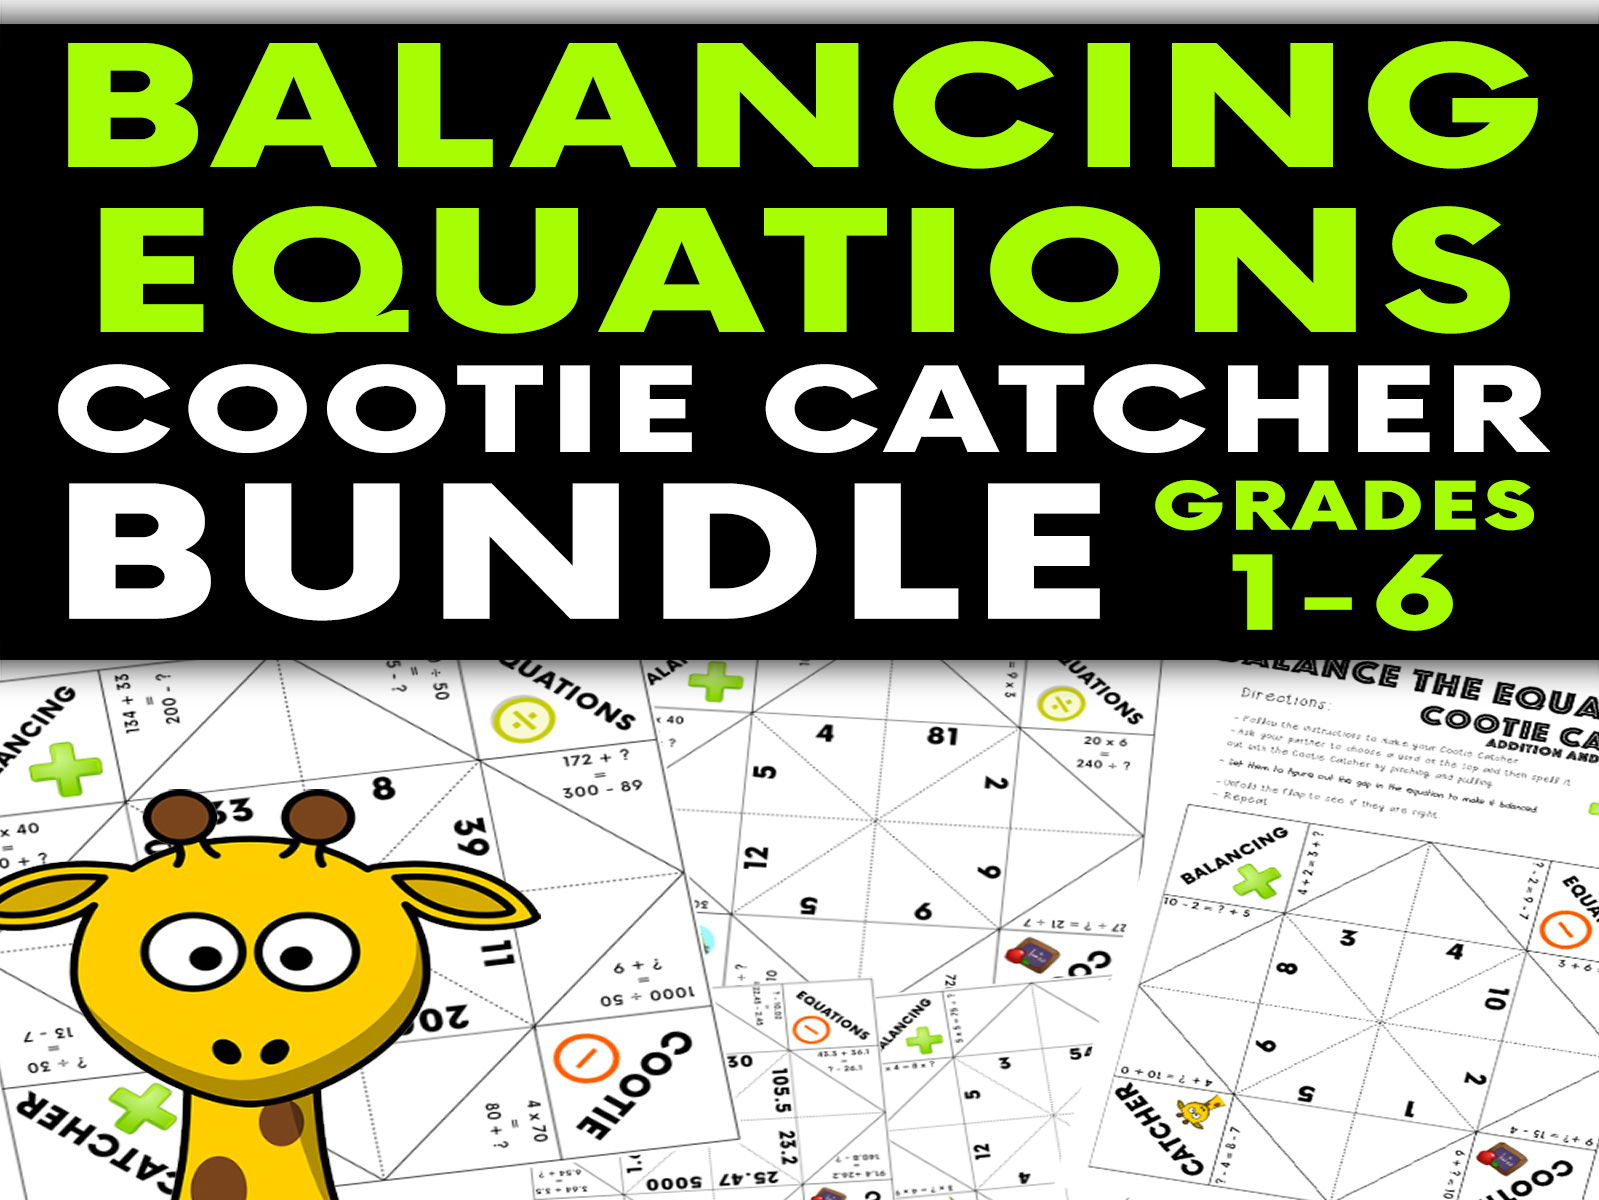 Balance The Equations Cootie Catcher Bundle: Years 2 - 7